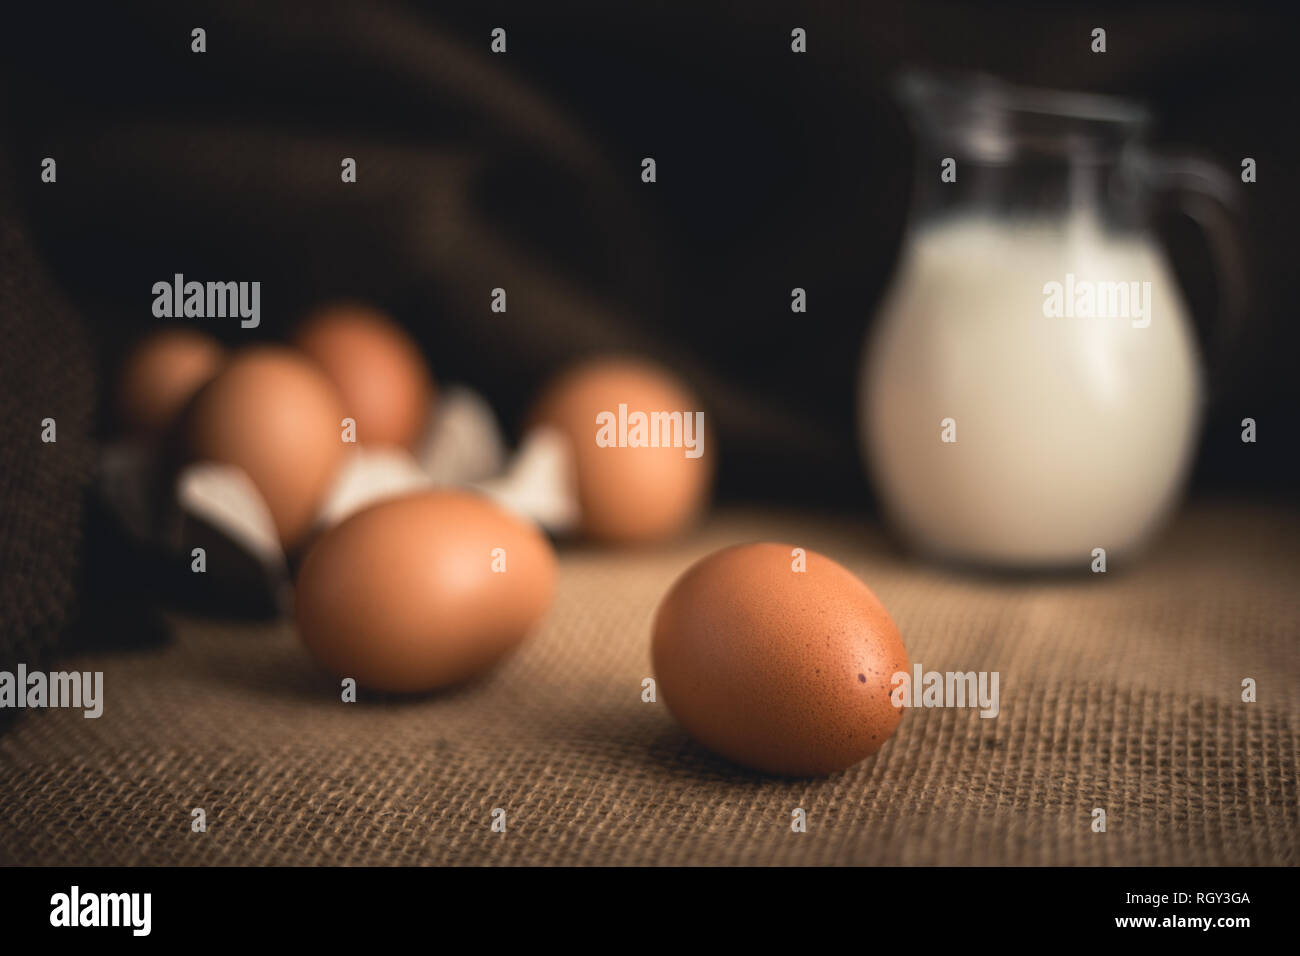 Photo of raw illuminated eggs  in kitchen with jute on dark blurry background Close-up photography of bio chicken eggs in egg box with milk in a ewer  Stock Photo